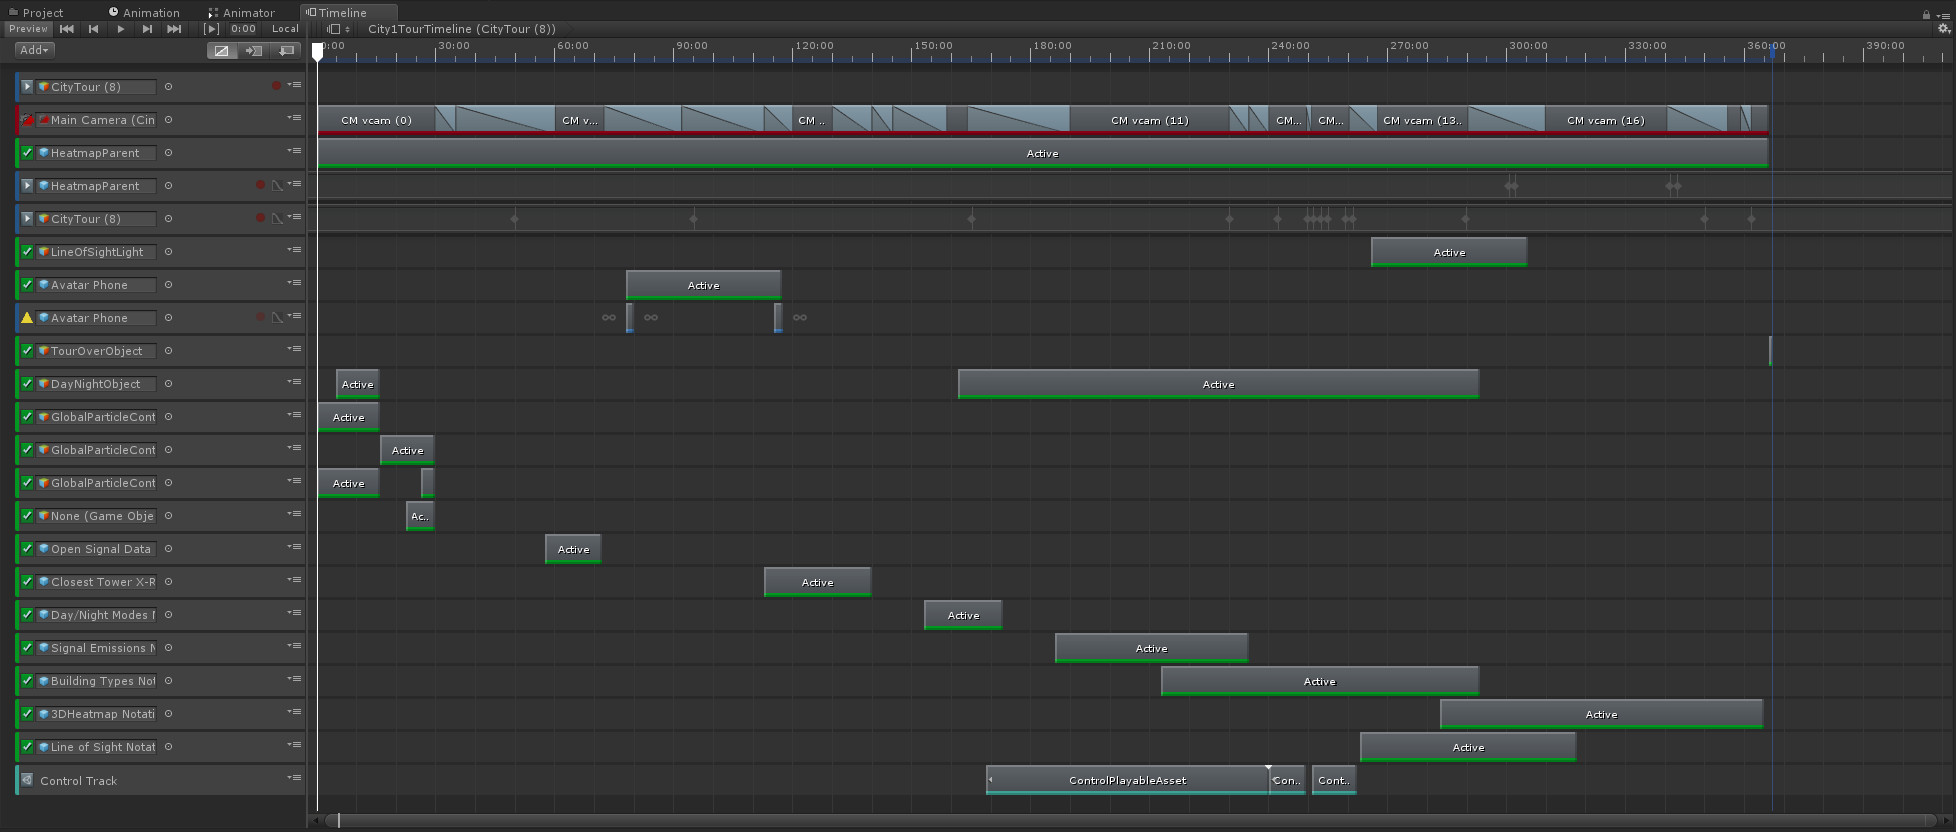 The timeline became an integral part of our pre-scripted demos. Reducing development time by 75% or more.